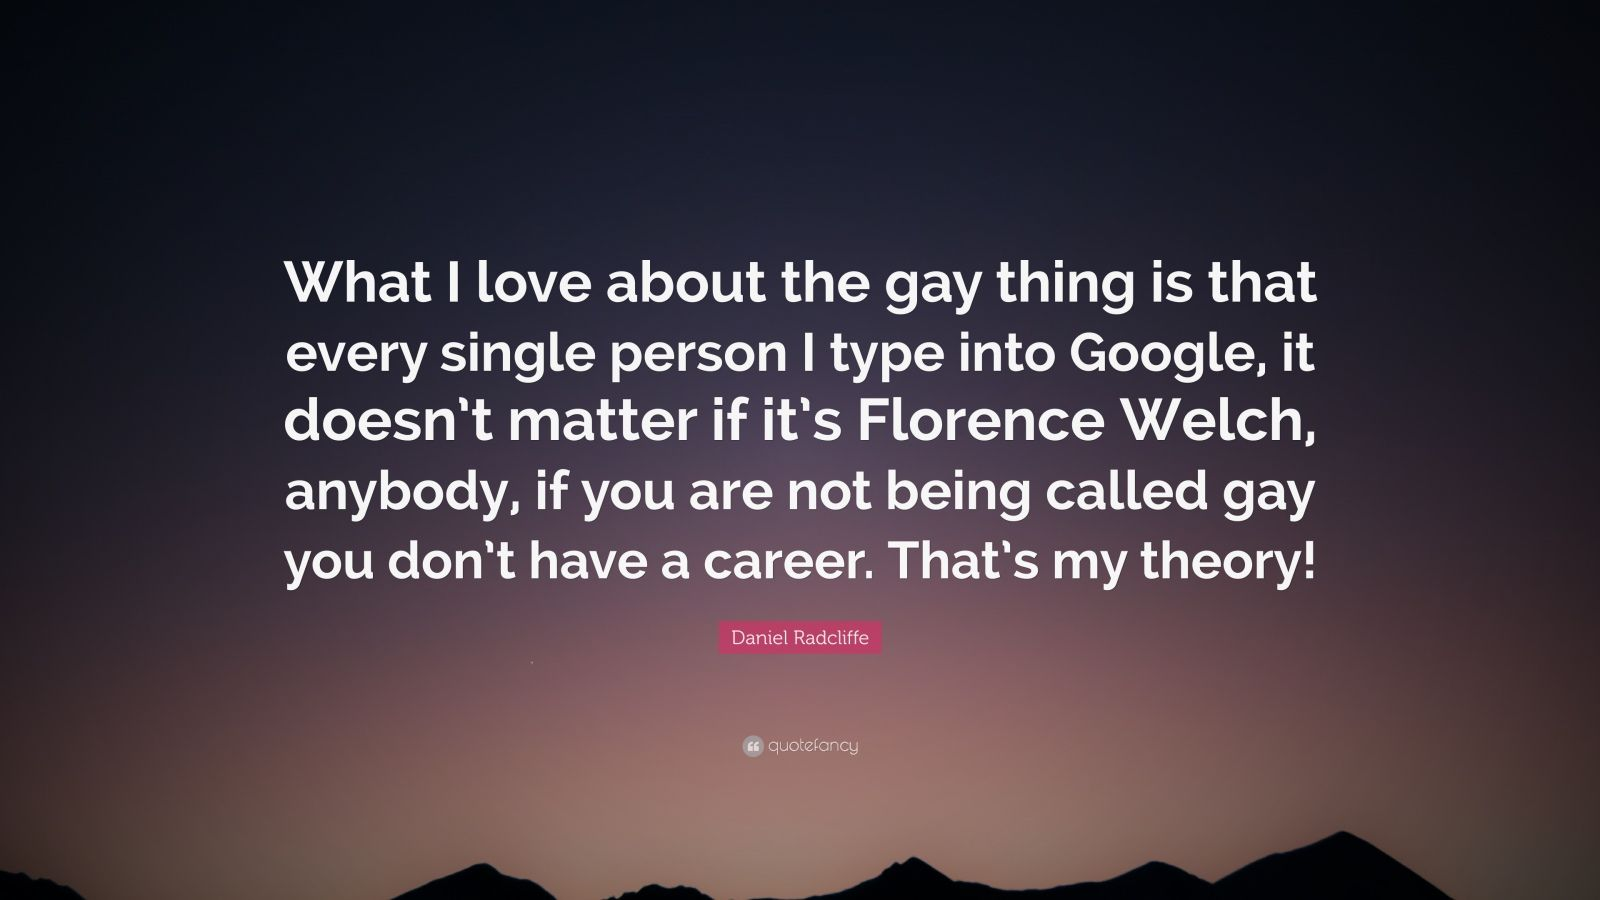 "Daniel Radcliffe Quote: ""What I love about the gay thing is that every single person I type into Google, it doesn't matter if it's Florence Welch, anybody, if you are not being called gay you don't have a career. That's my theory!"""